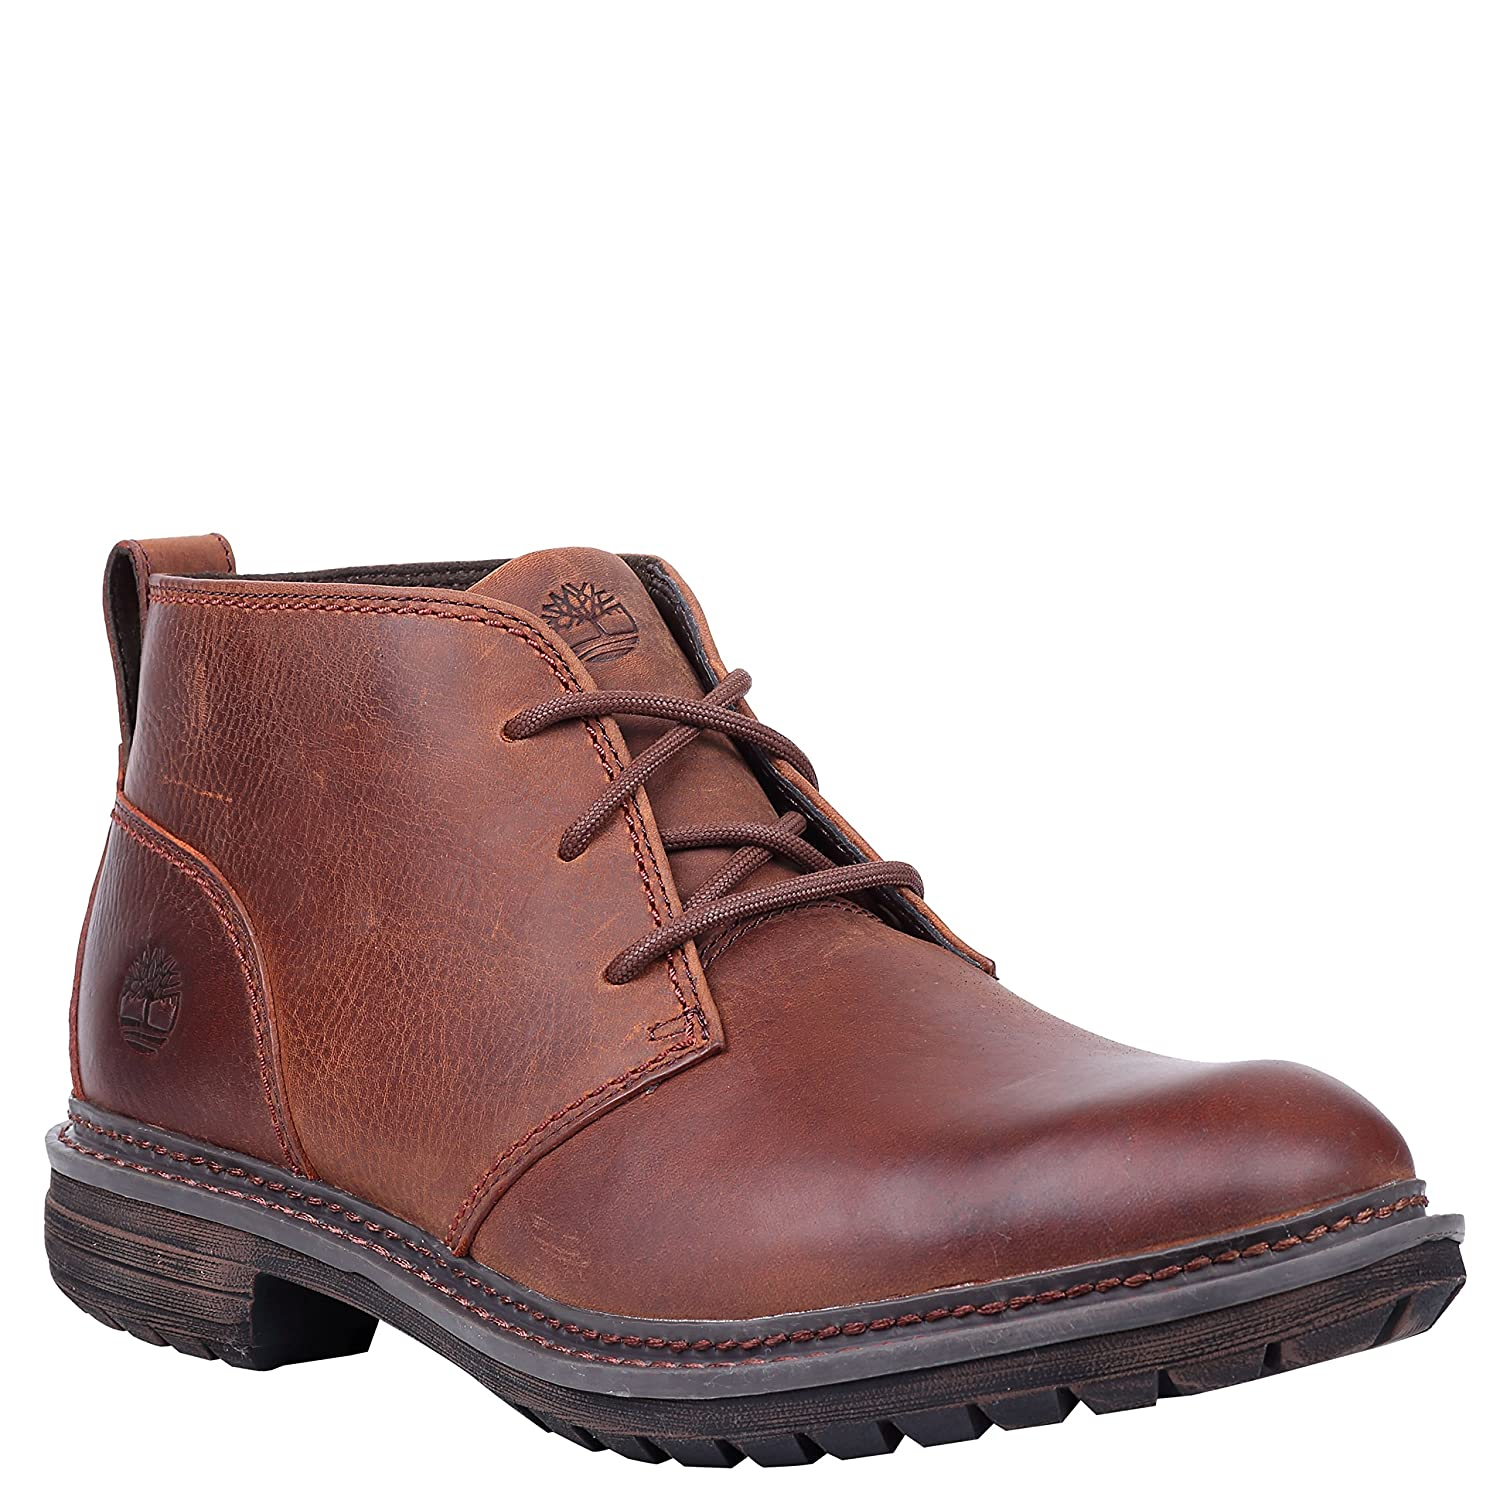 Timberland Leather Logan Bay Chelsea Boots in Brown for Men